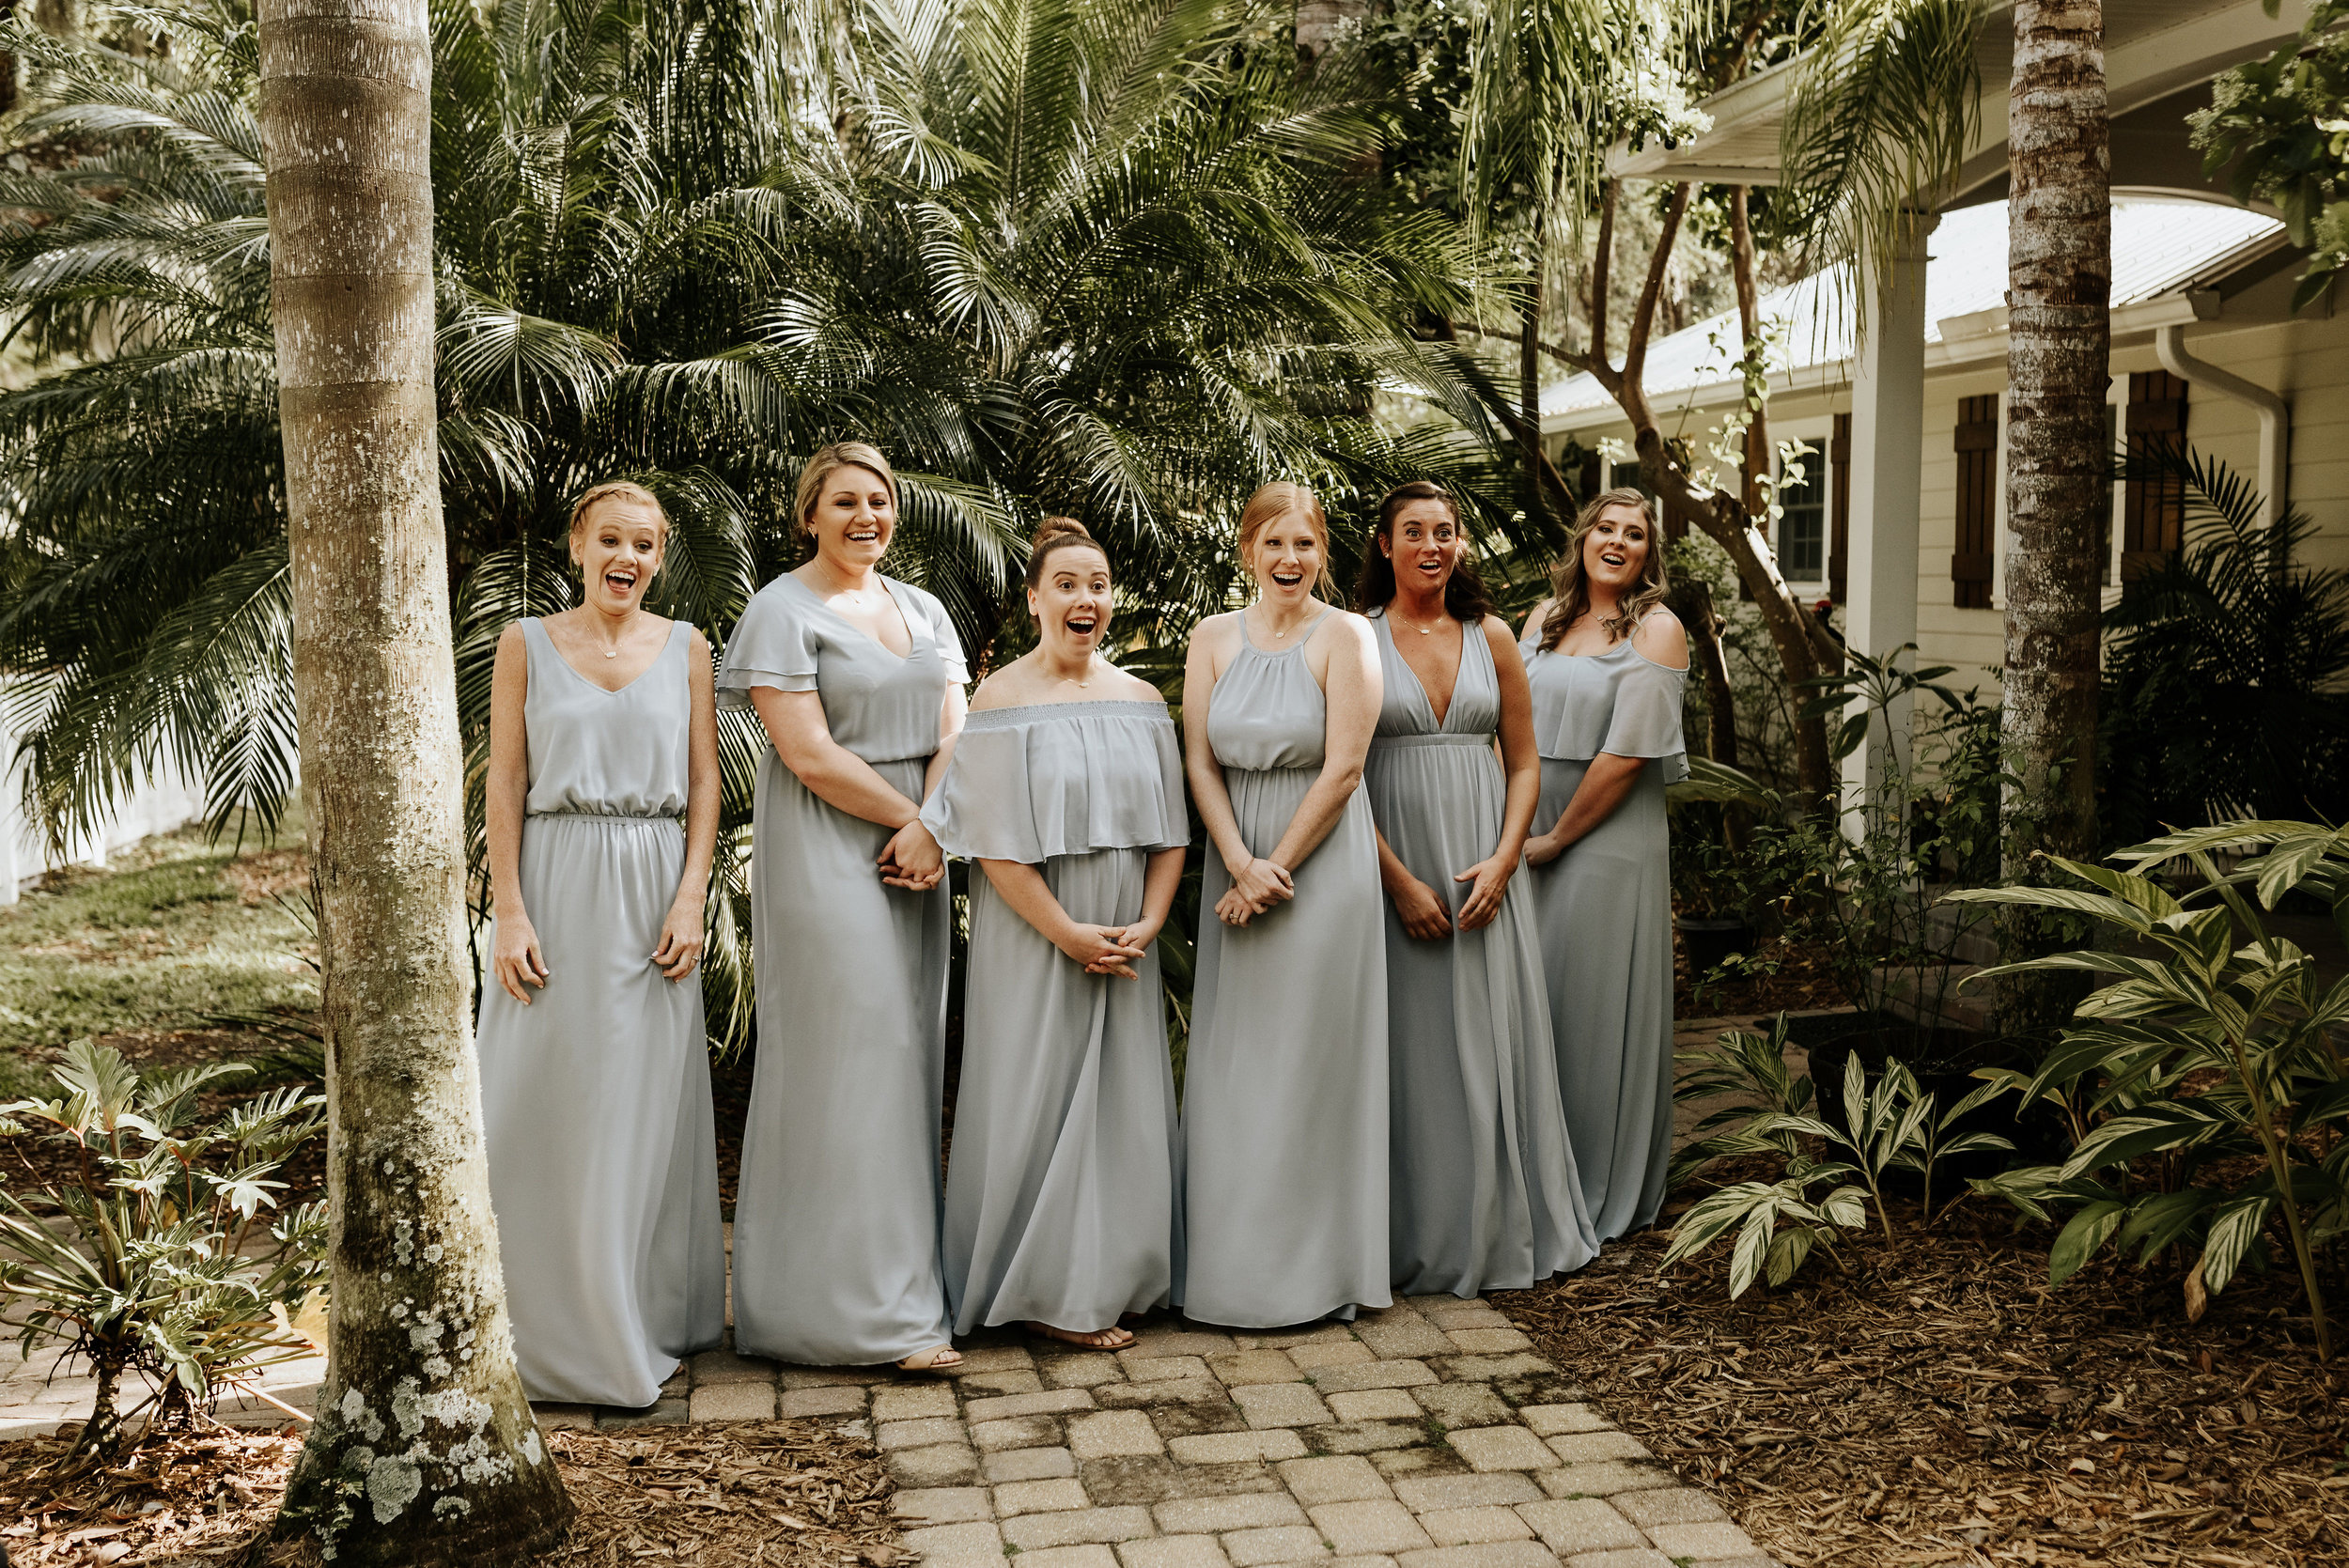 Mikenzi_Brad_Wedding_The_Delamater_House_New_Smyrna_Beach_Florida_Photography_by_V_9928.jpg